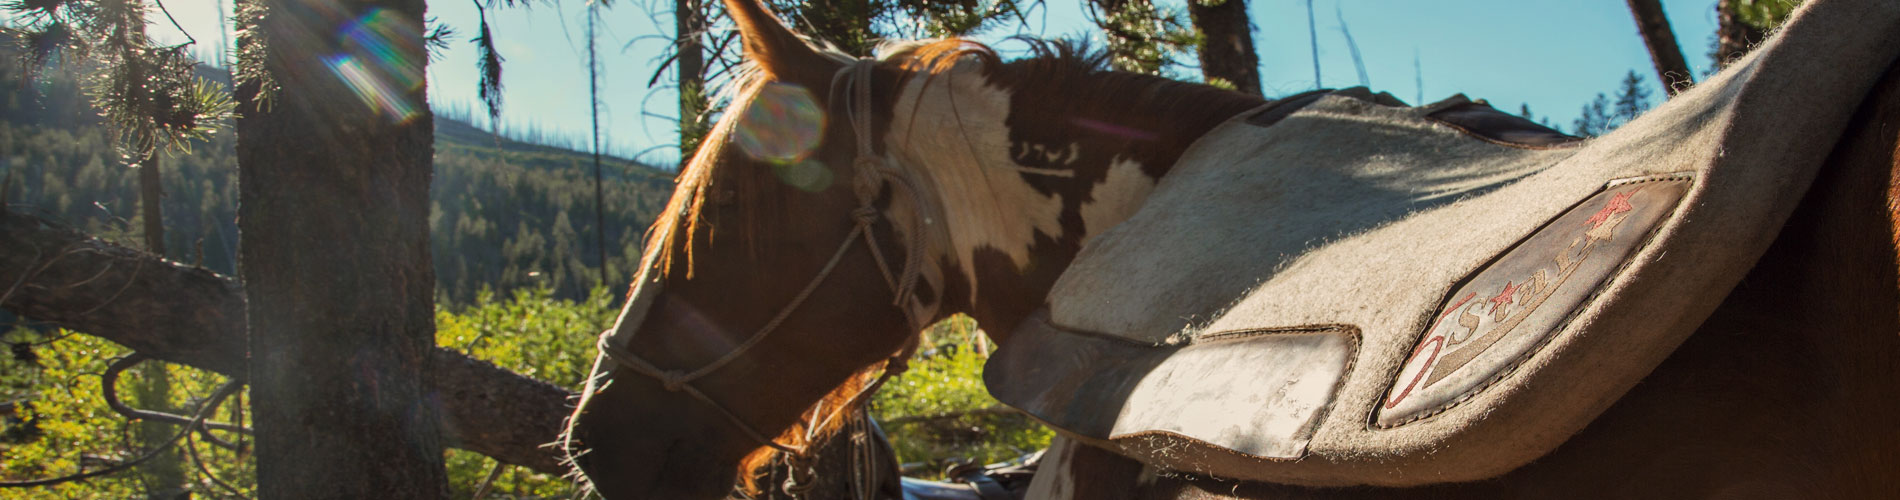 Saddle Pads & What Manufacturers Don't Tell You | 5 Star Equine